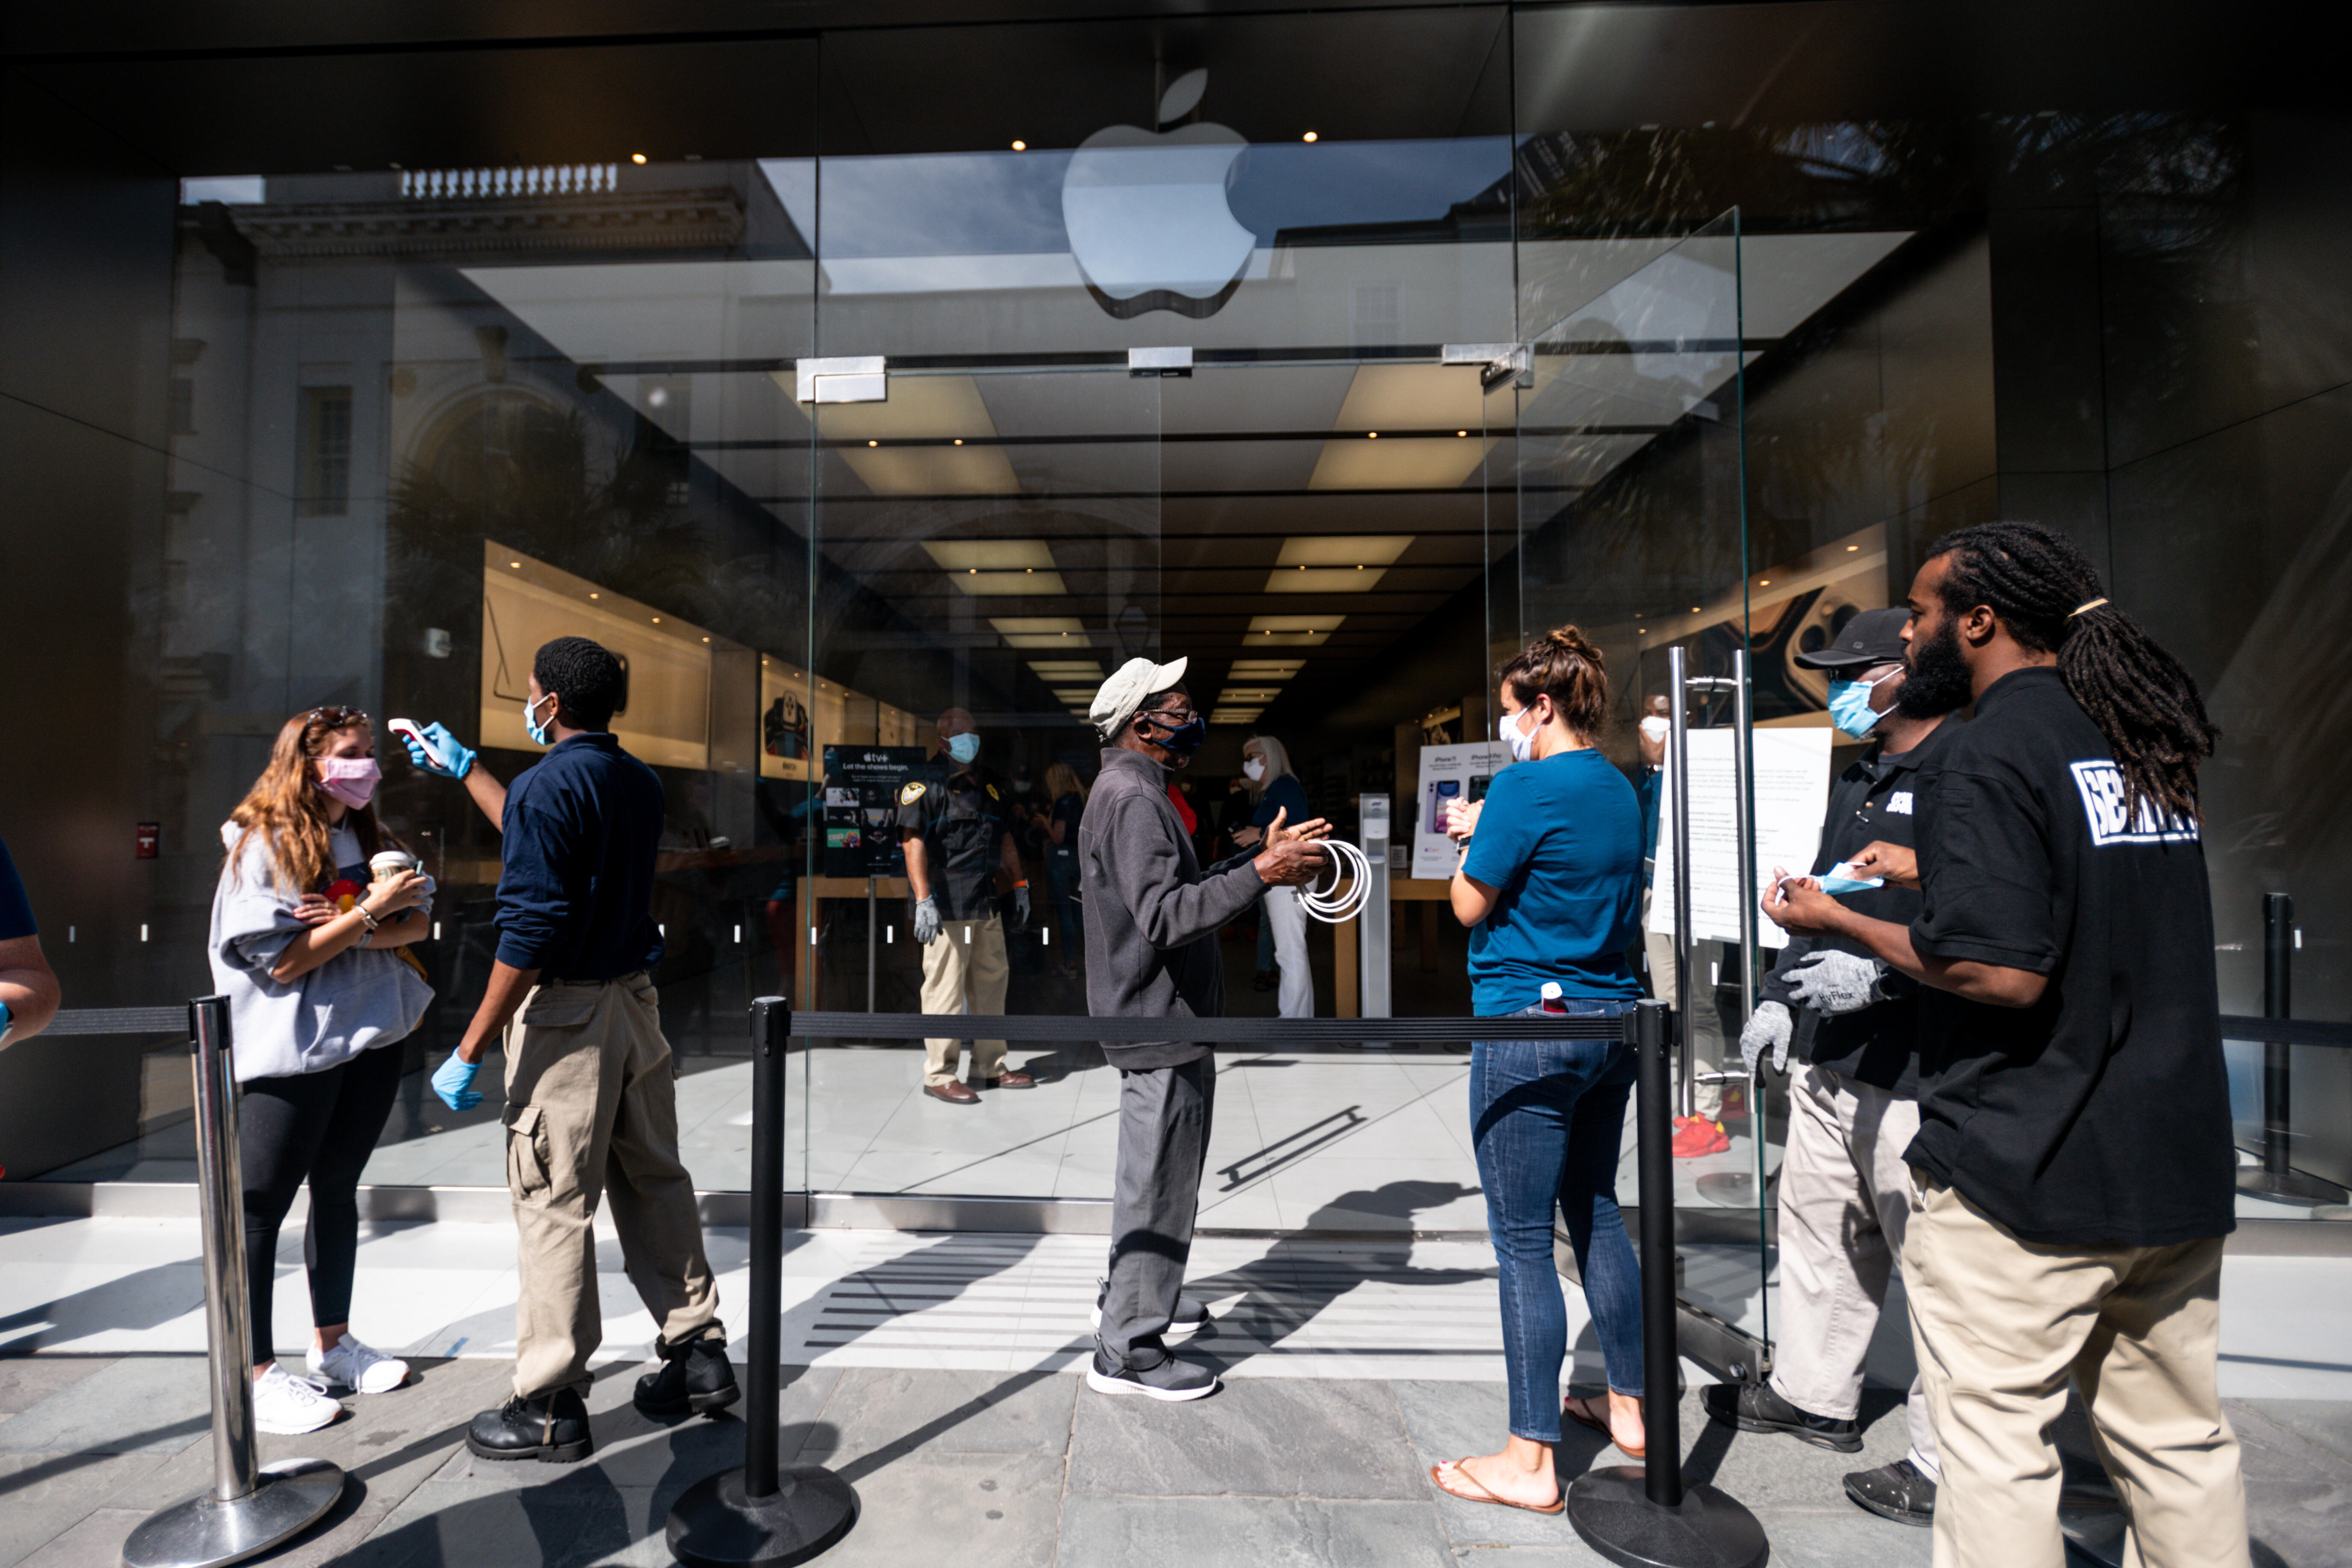 US: Apple stores open, with new rules